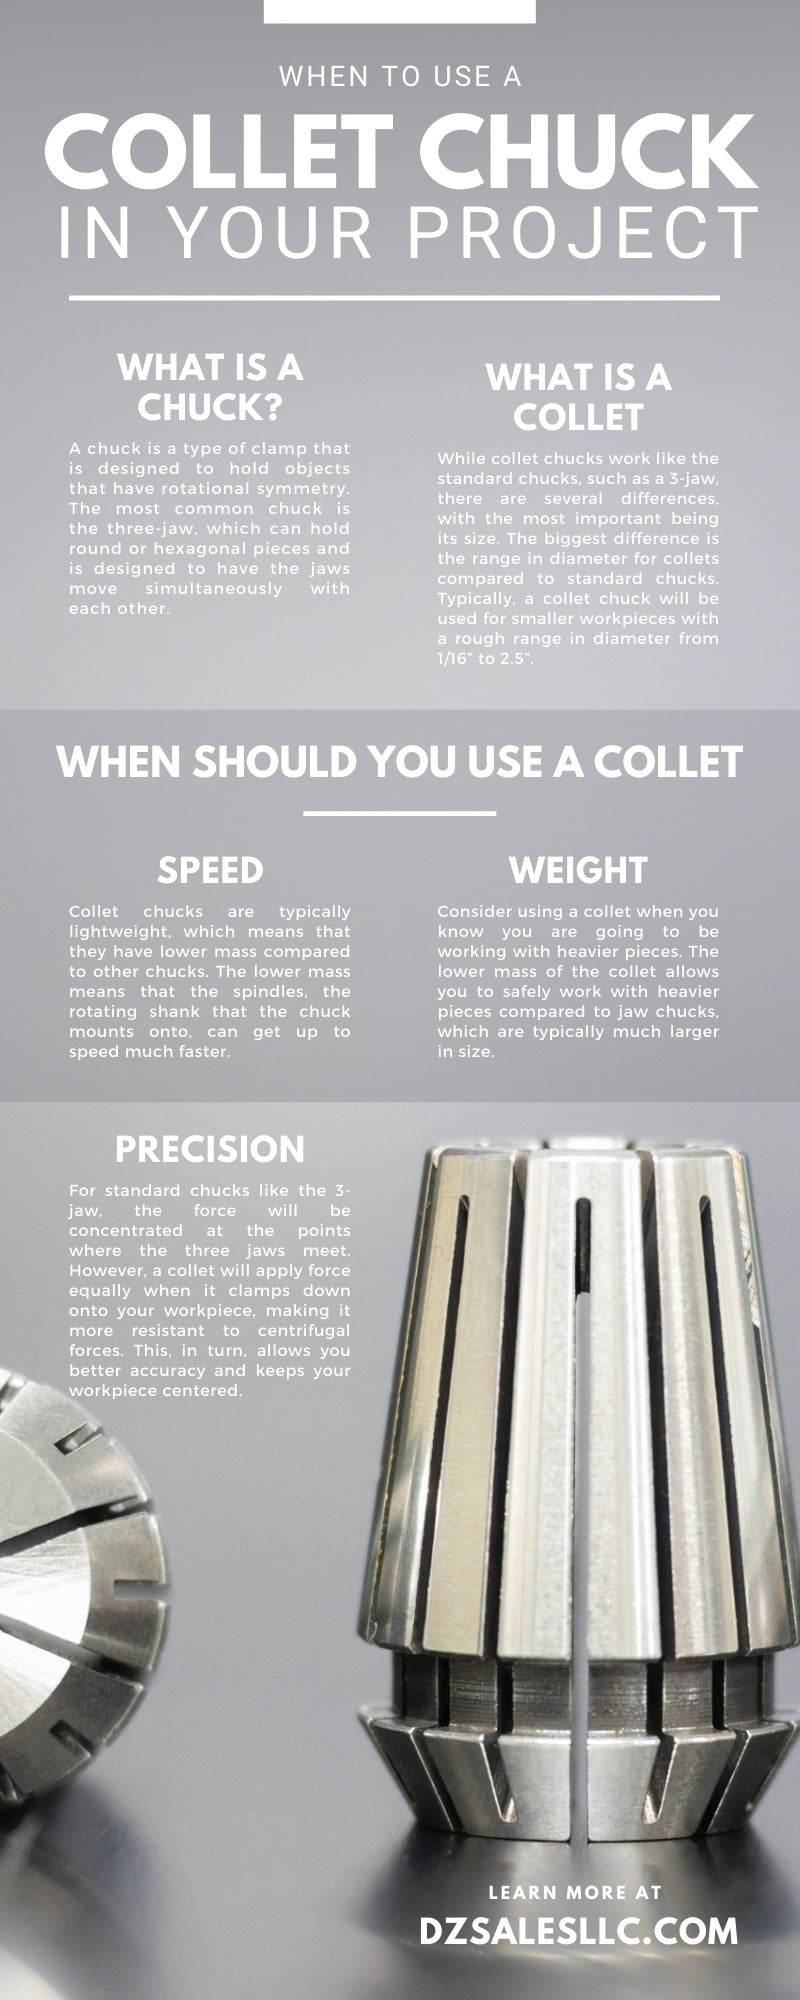 When To Use a Collet Chuck in Your Project